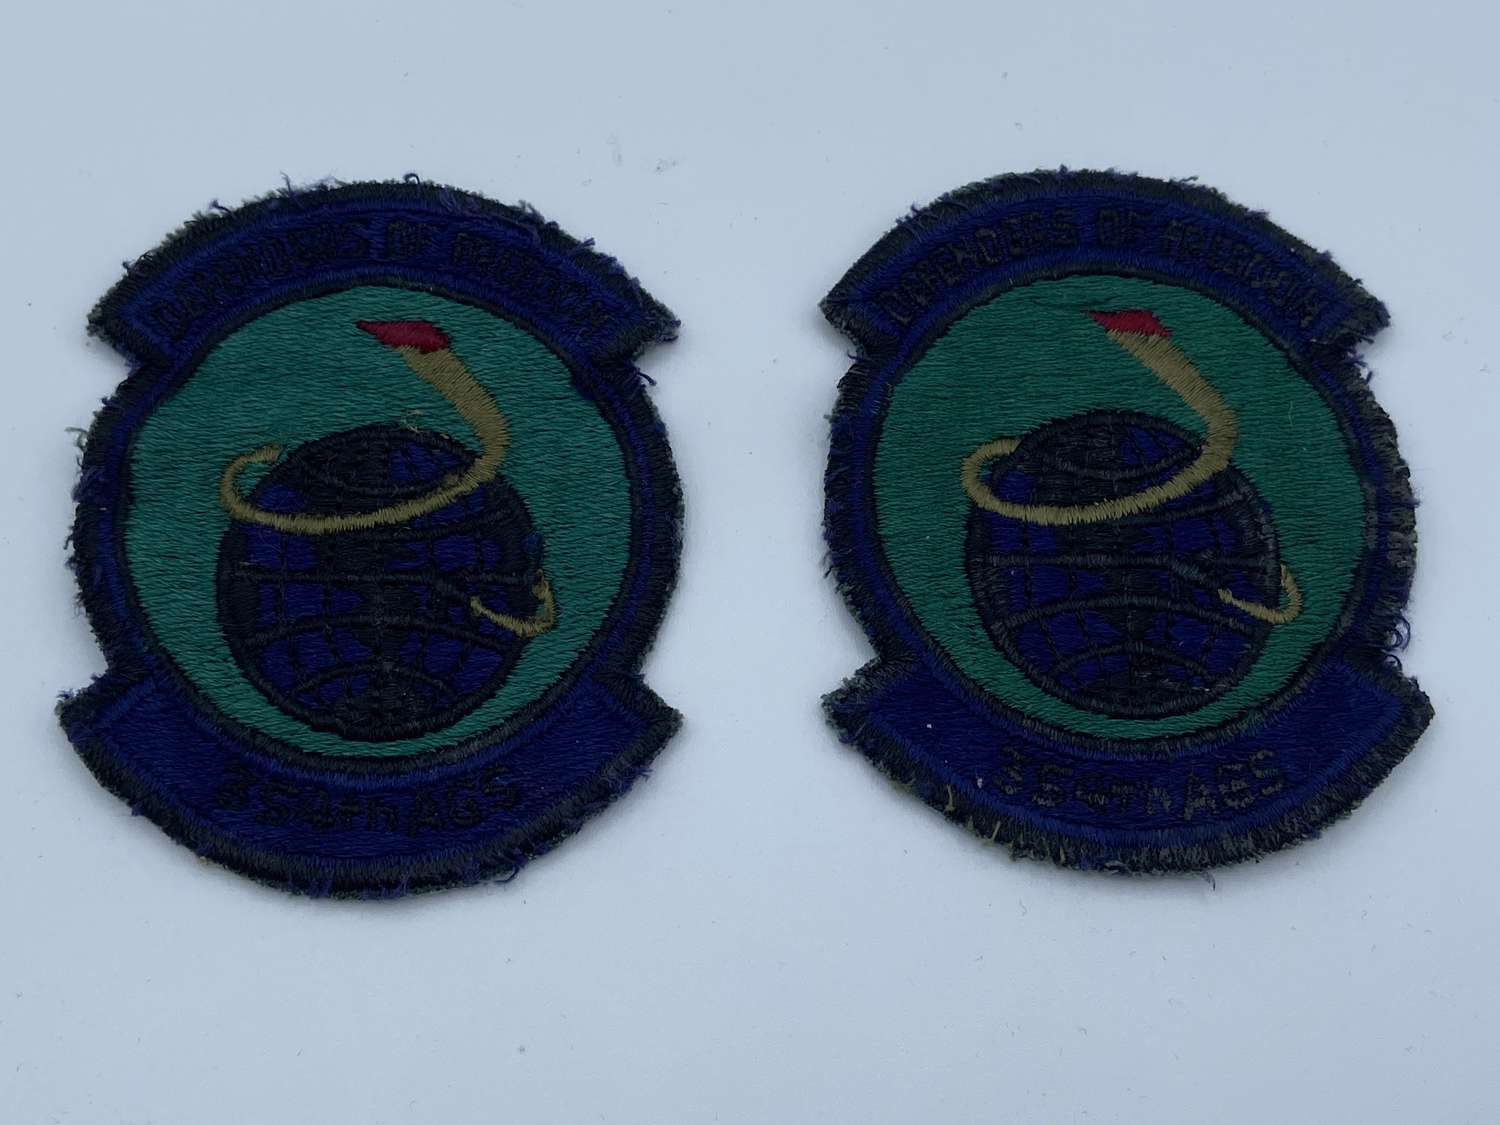 Vintage 354th AGS Generation Squadron USAF Patches X 2